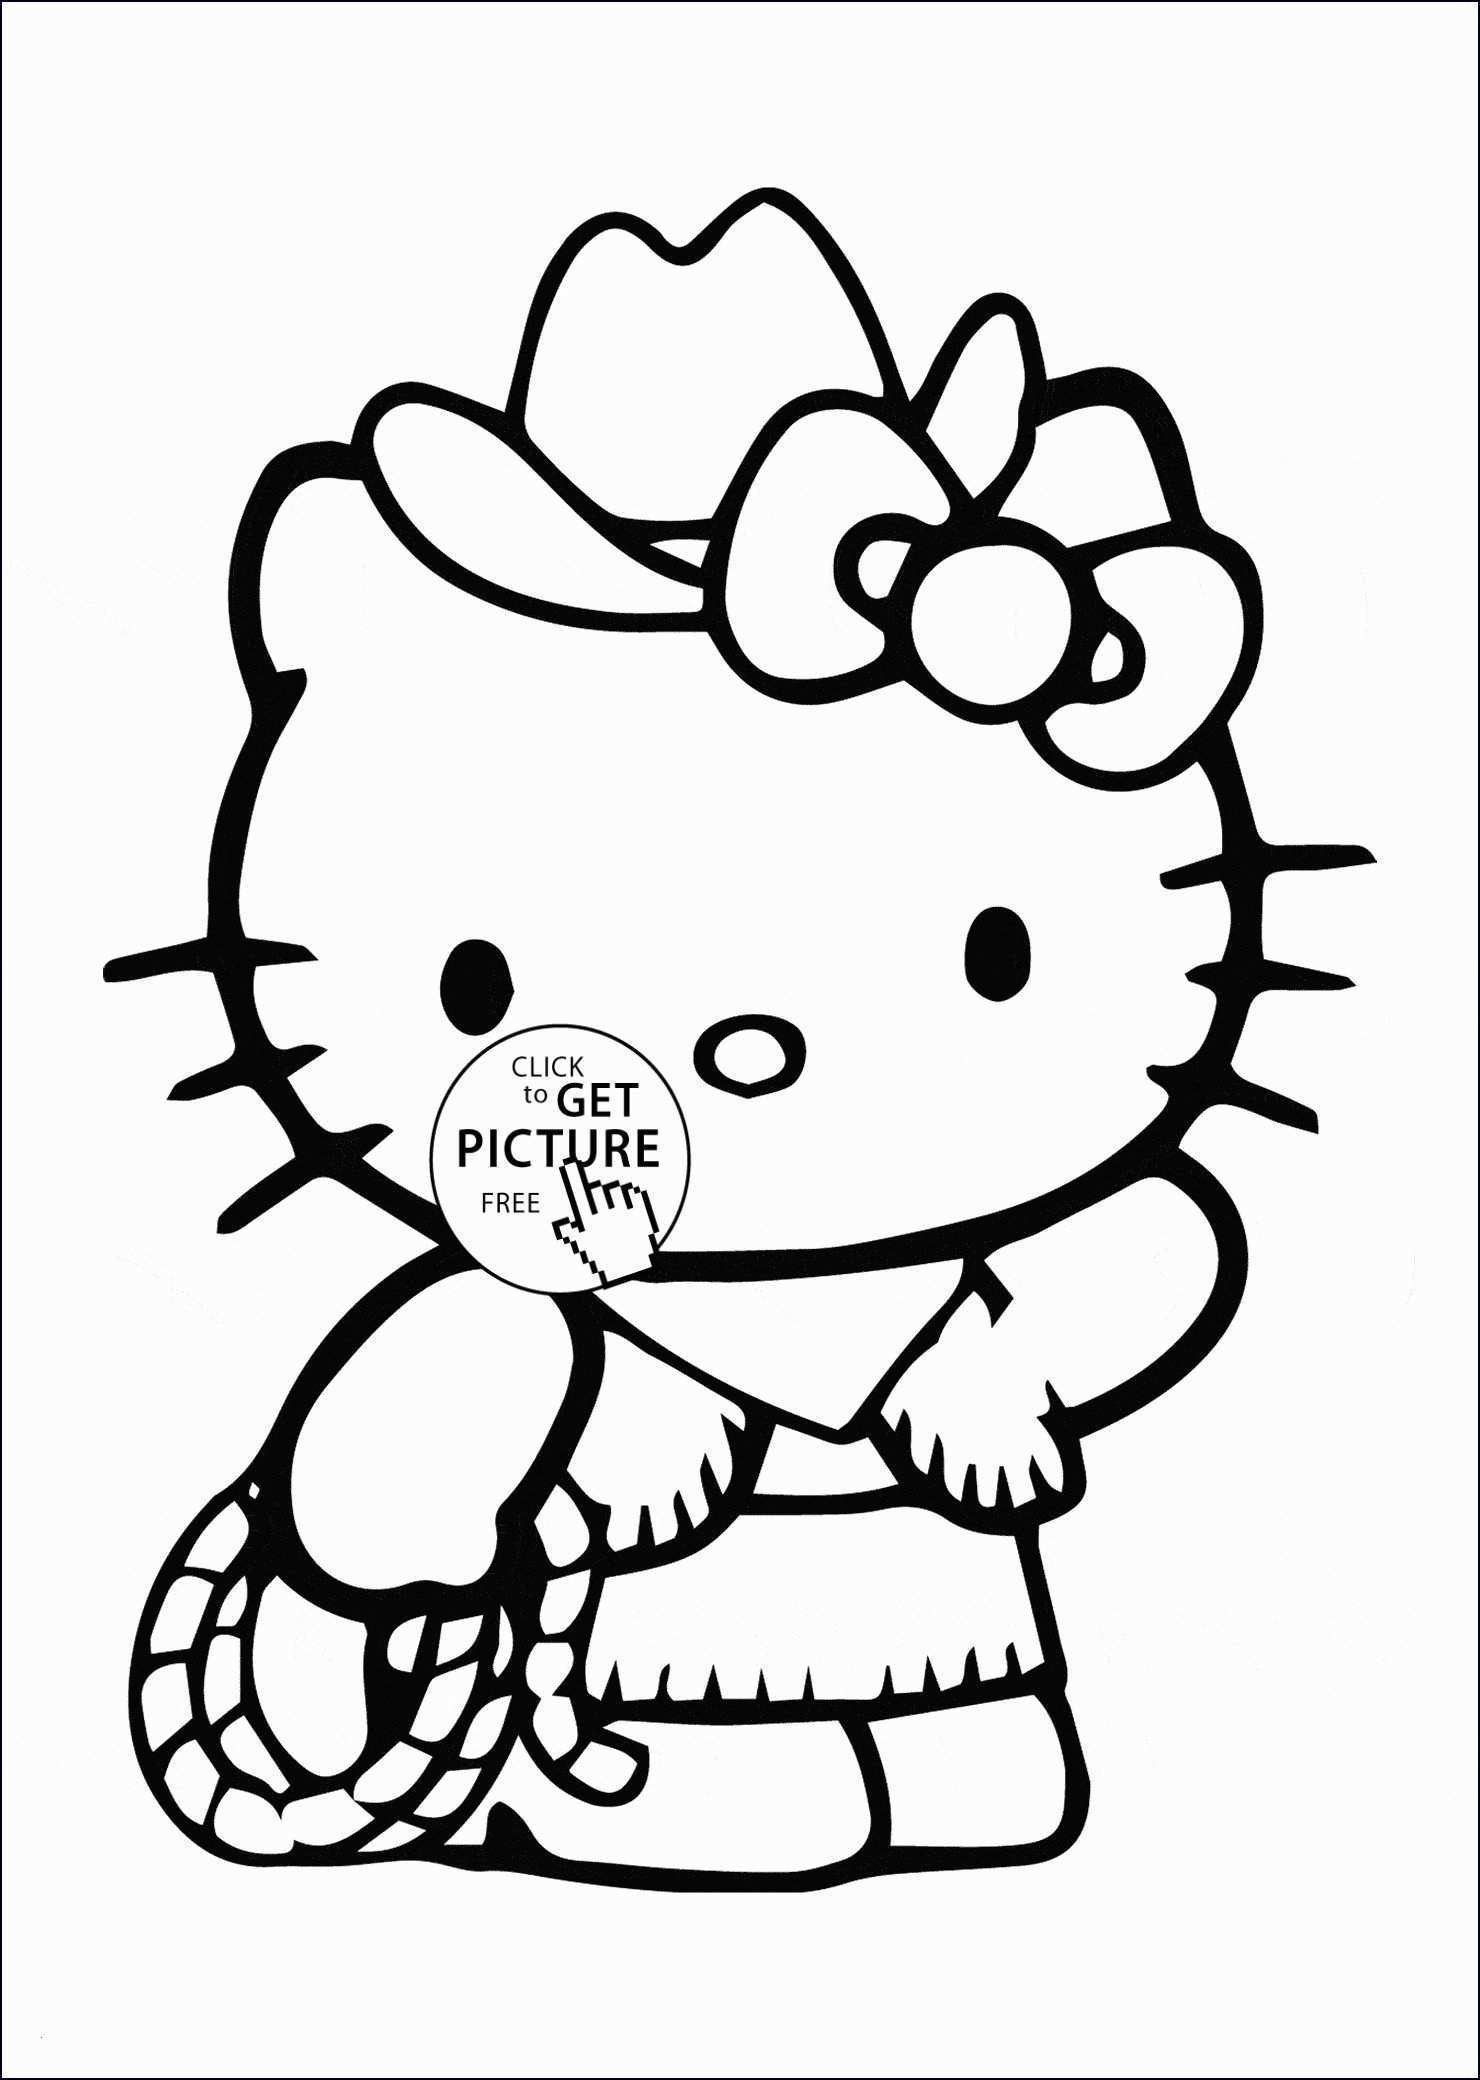 Ausmalbilder Weihnachten Hello Kitty Genial Hello Kitty Para Colorear Sammlung